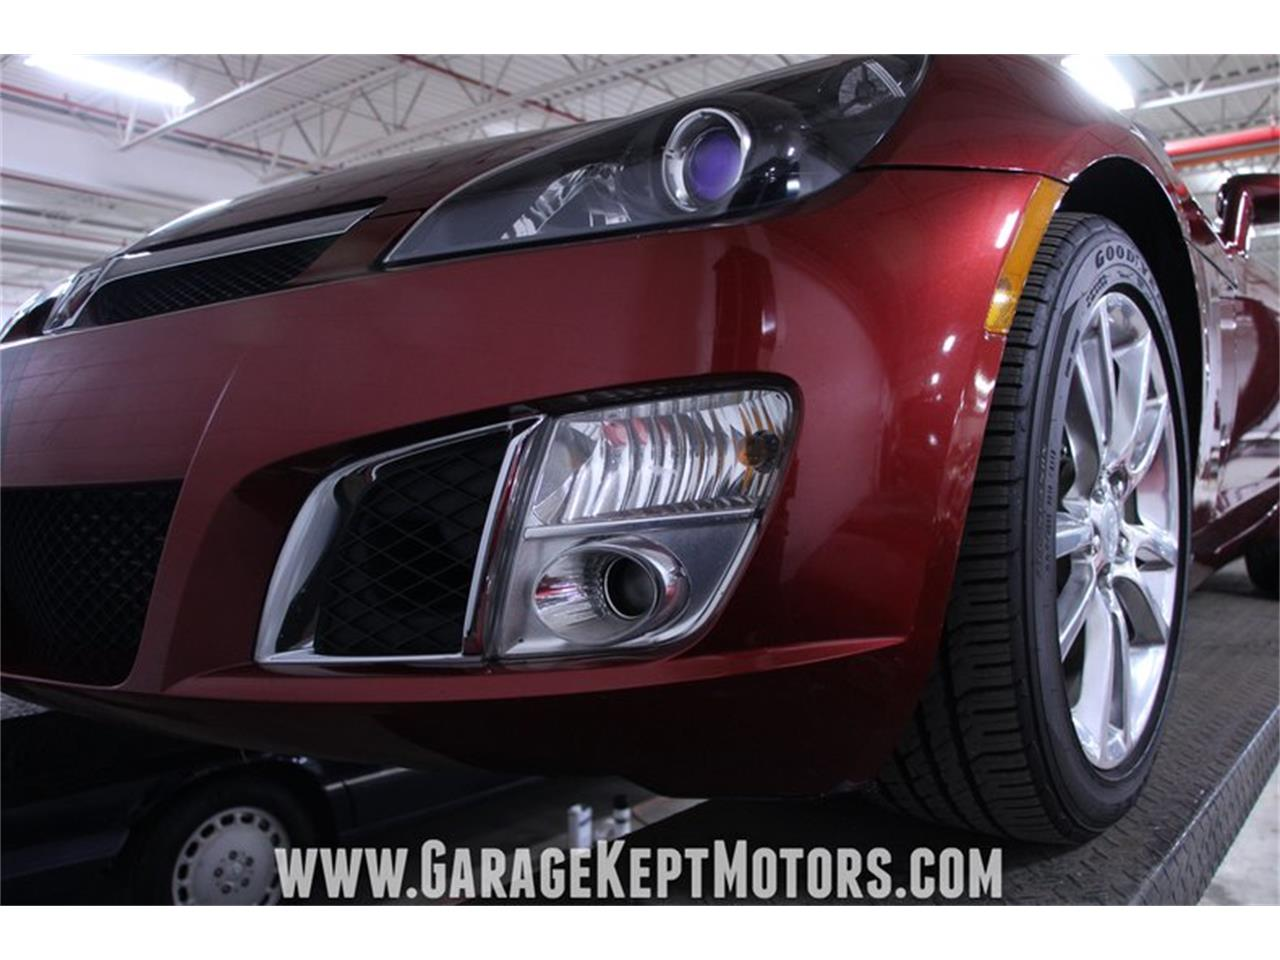 2009 Saturn Sky for sale in Grand Rapids, MI – photo 85